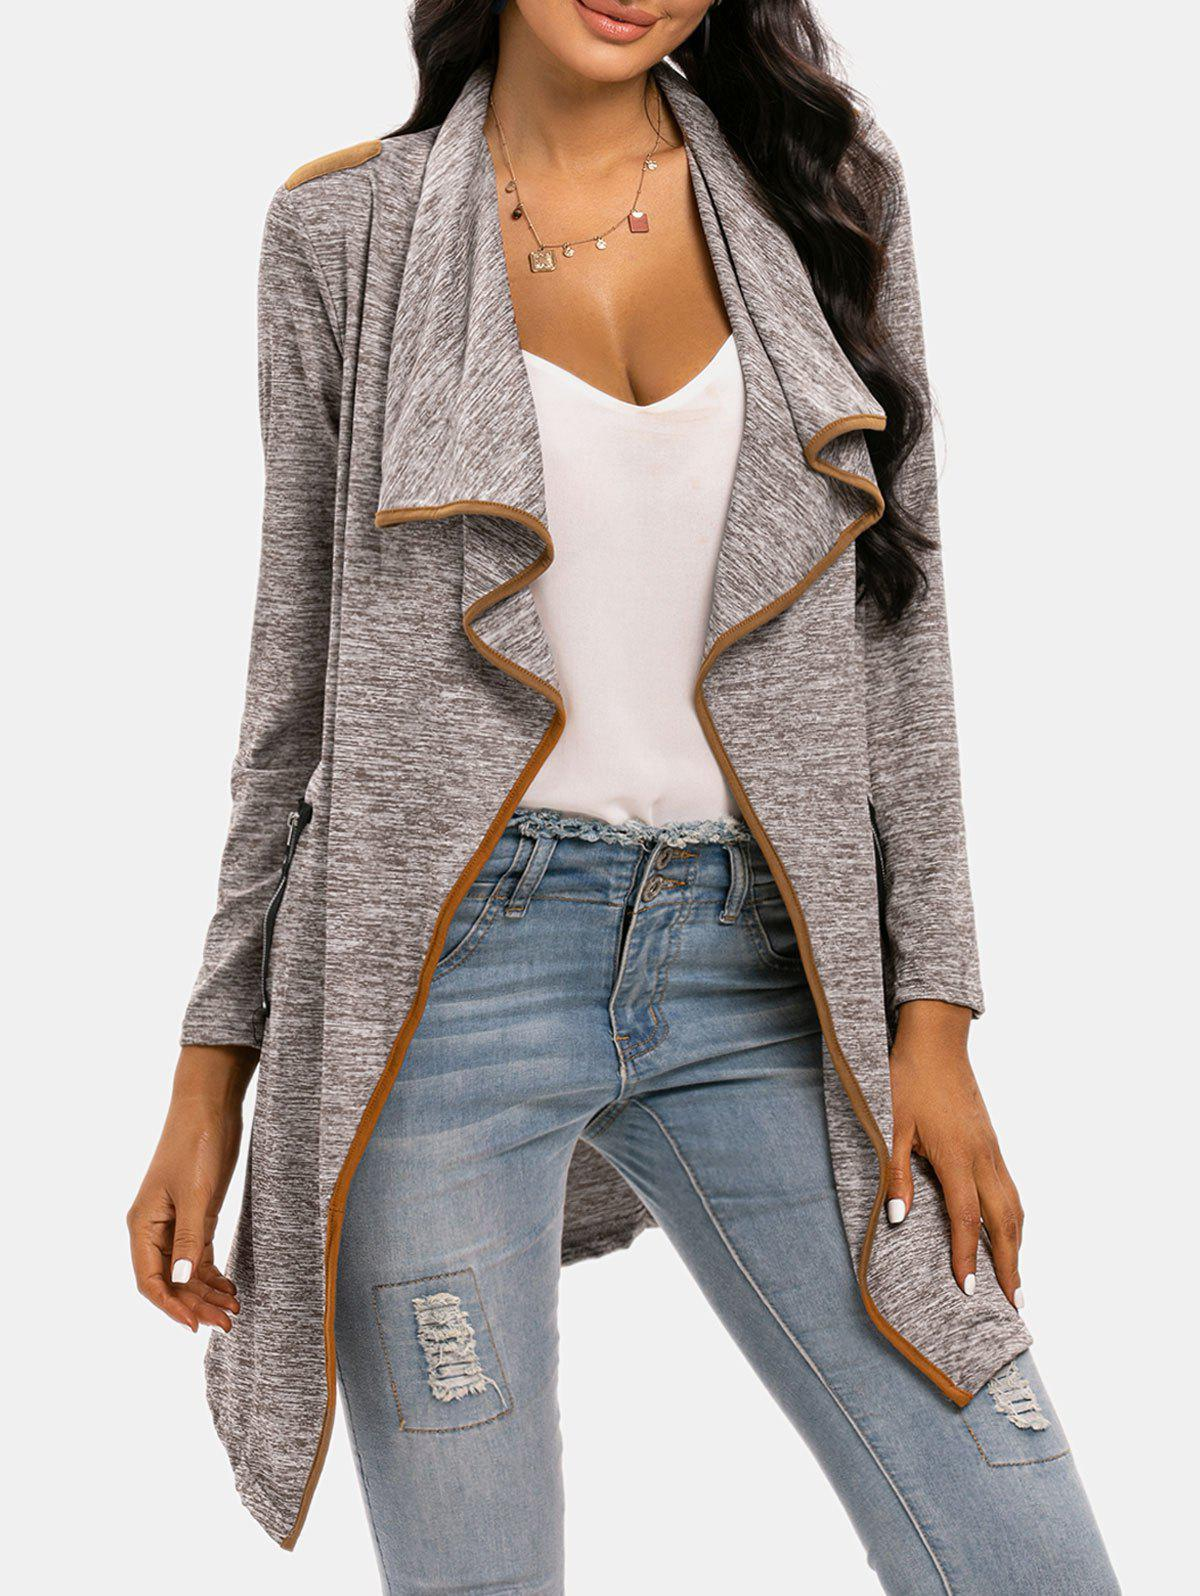 Draped Space Dye Binding Waterfall Cardigan - LIGHT COFFEE L